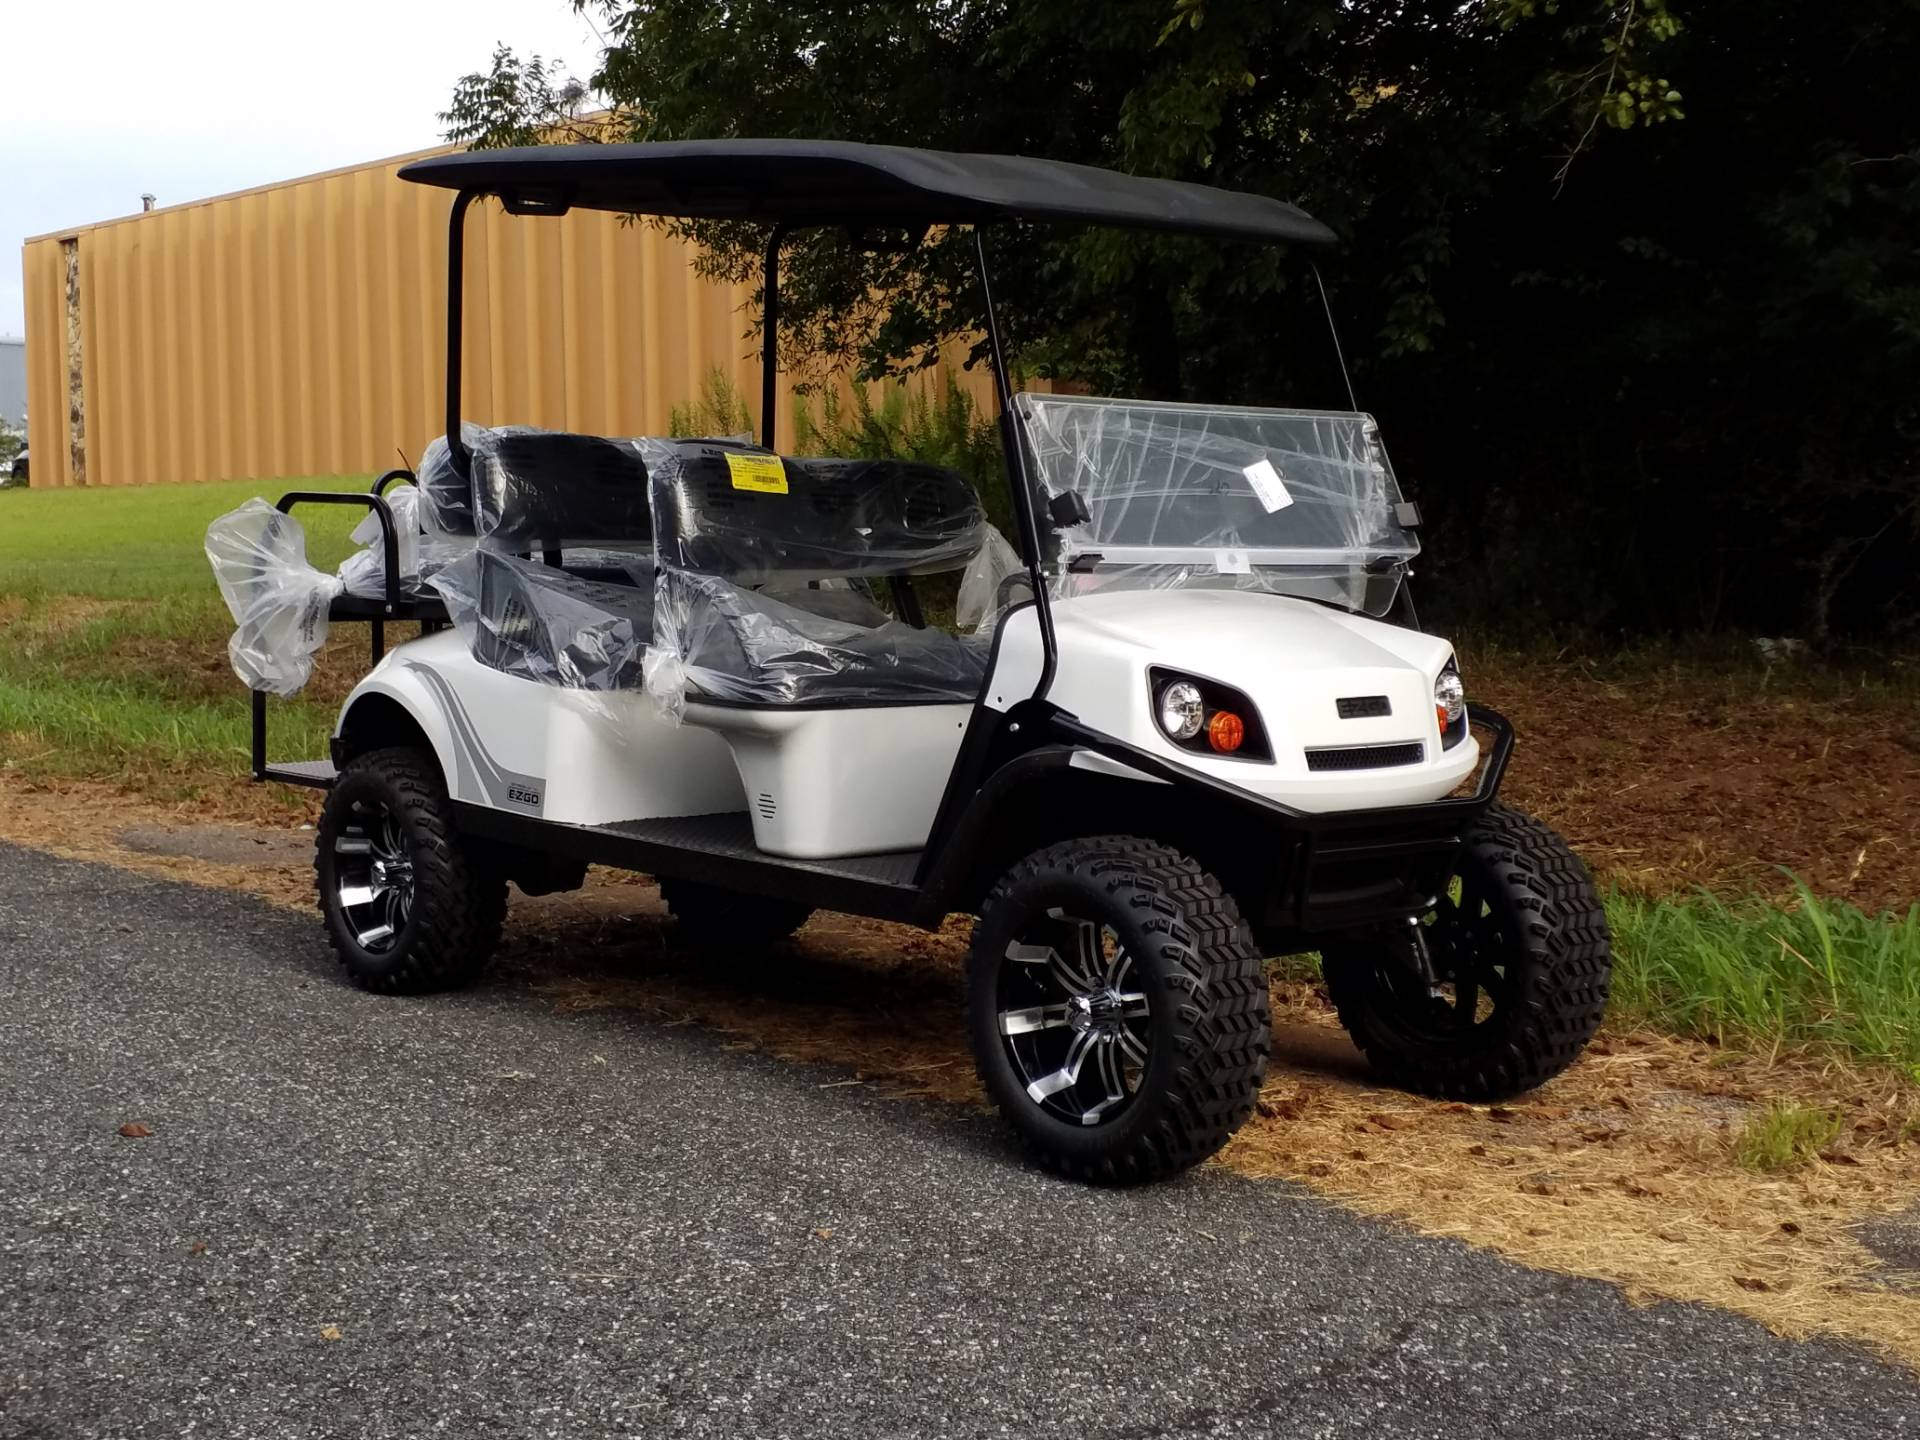 New 2019 E-Z-Go 72V Express L6 Electric Golf Carts in Covington, GA Ez Go Golf Cart Seat Diions Six on